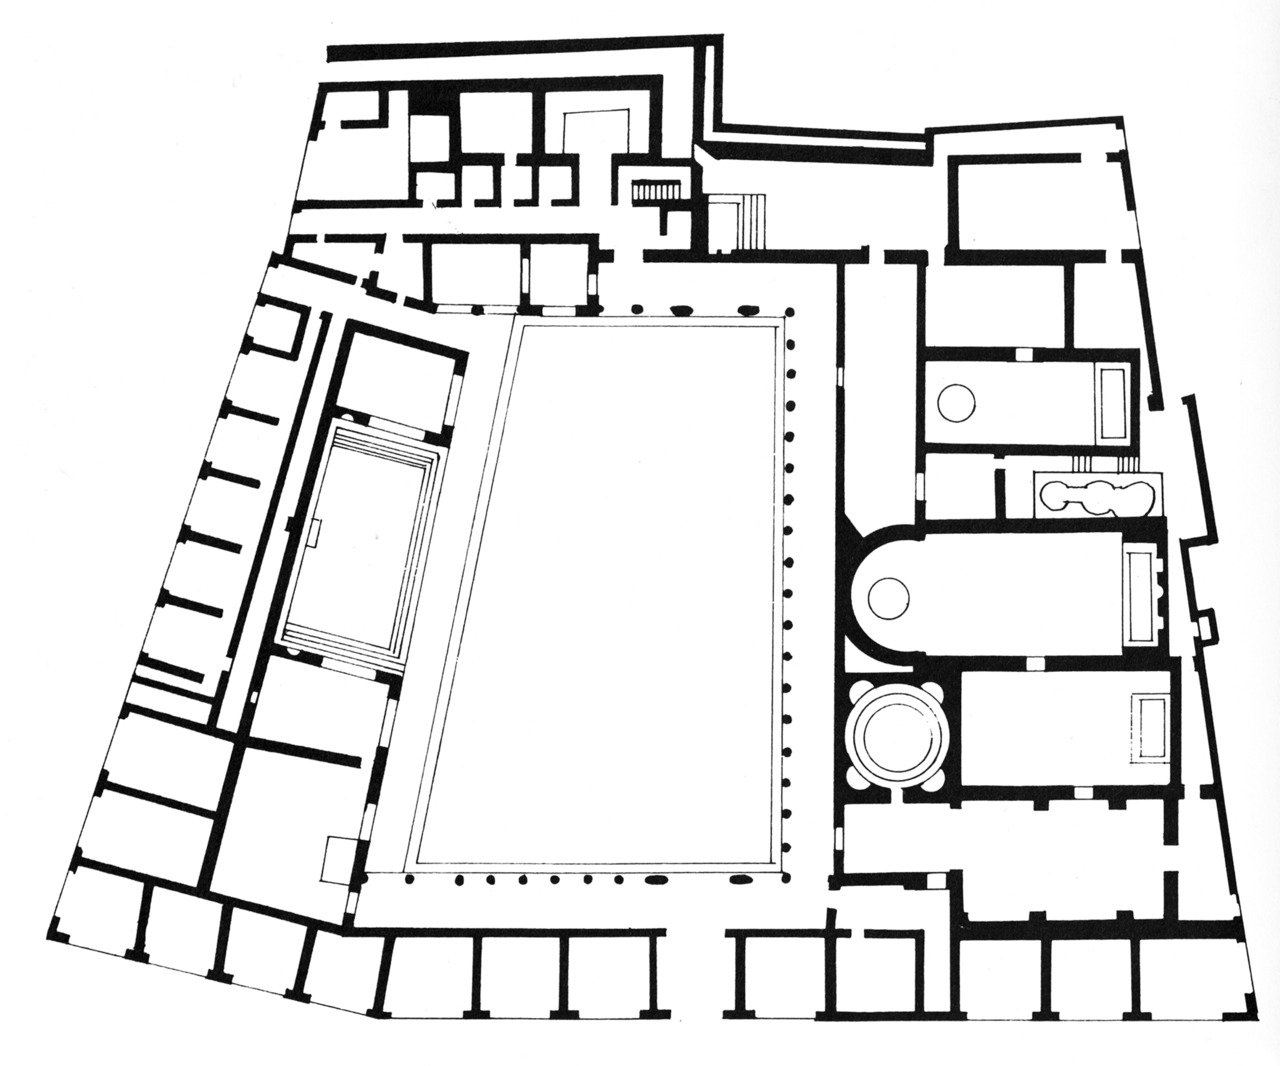 Black & White Plans [267]  archiveofaffinities:  Stabian Baths, Plan, Pompeii, Second Century B.C.